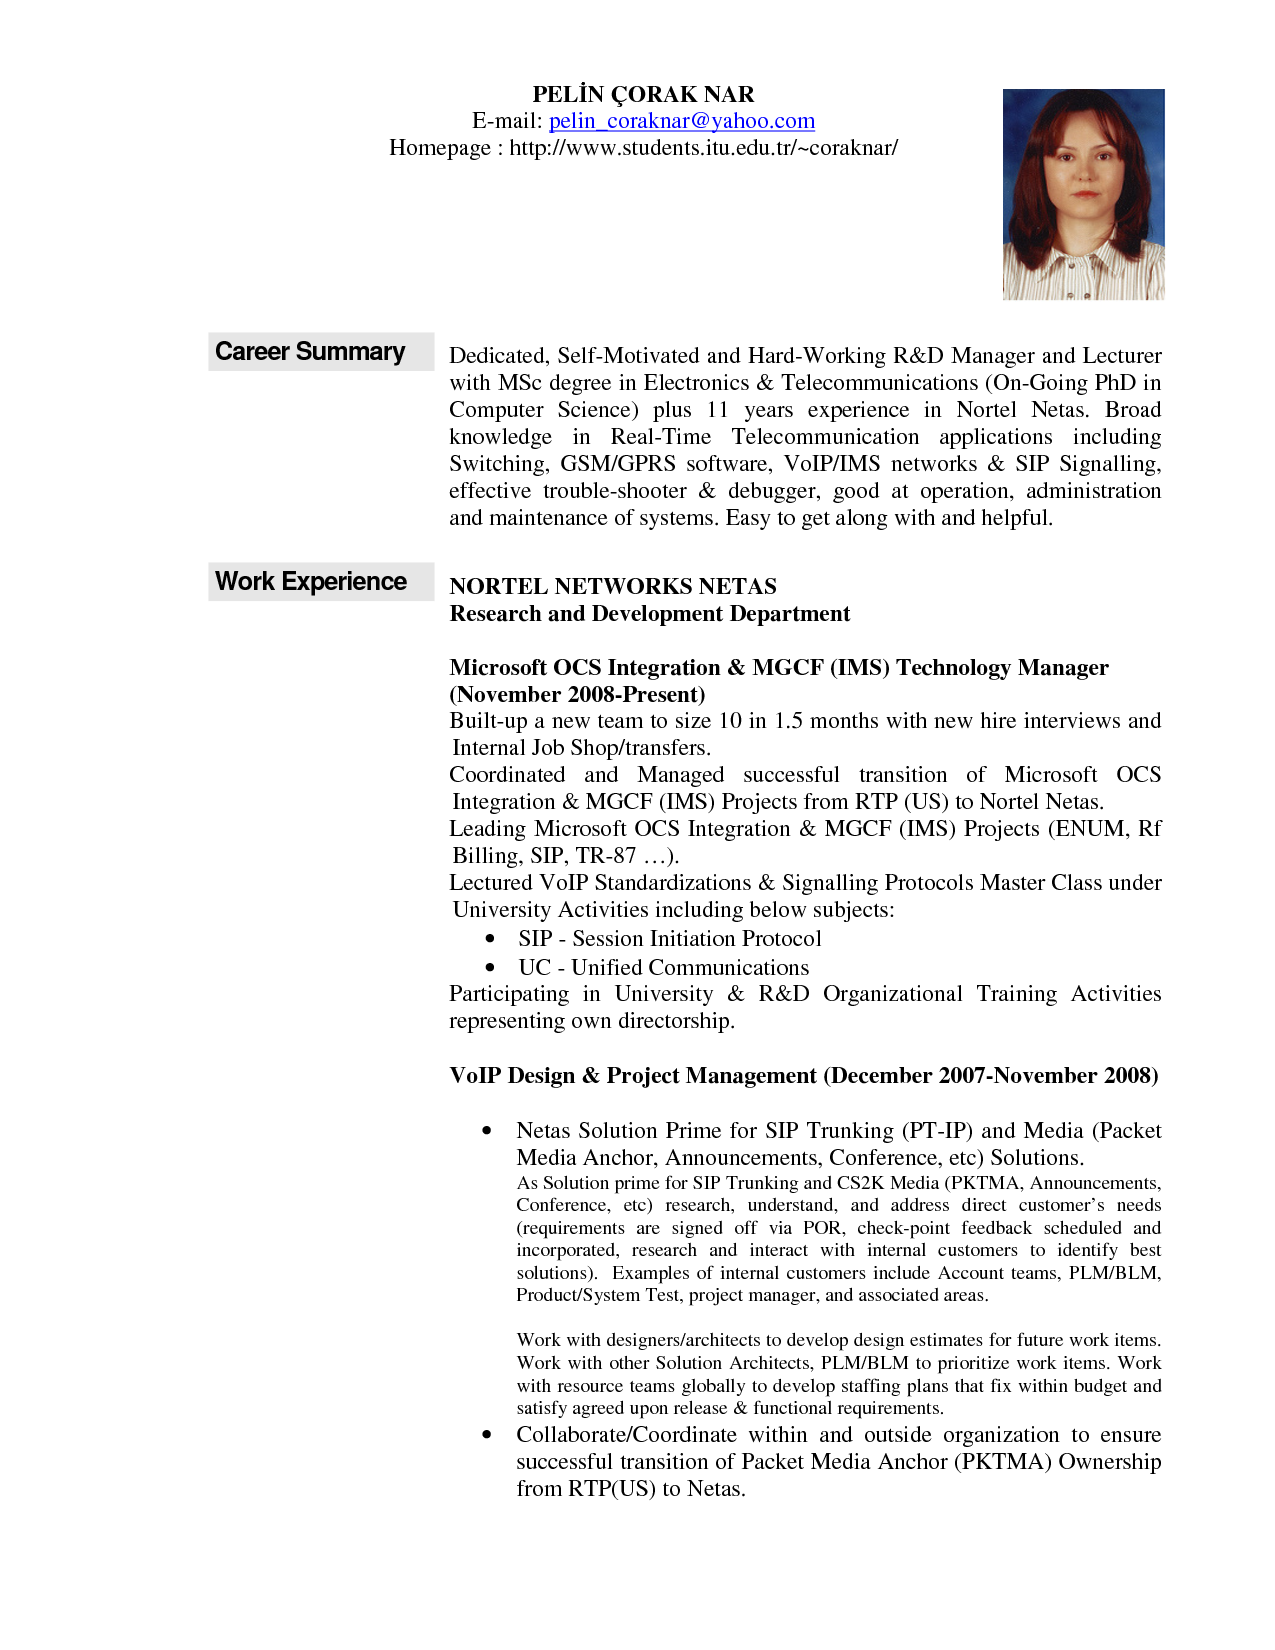 Summary For Resume Example Professional Summary Resume Examples For Template Profile  Home